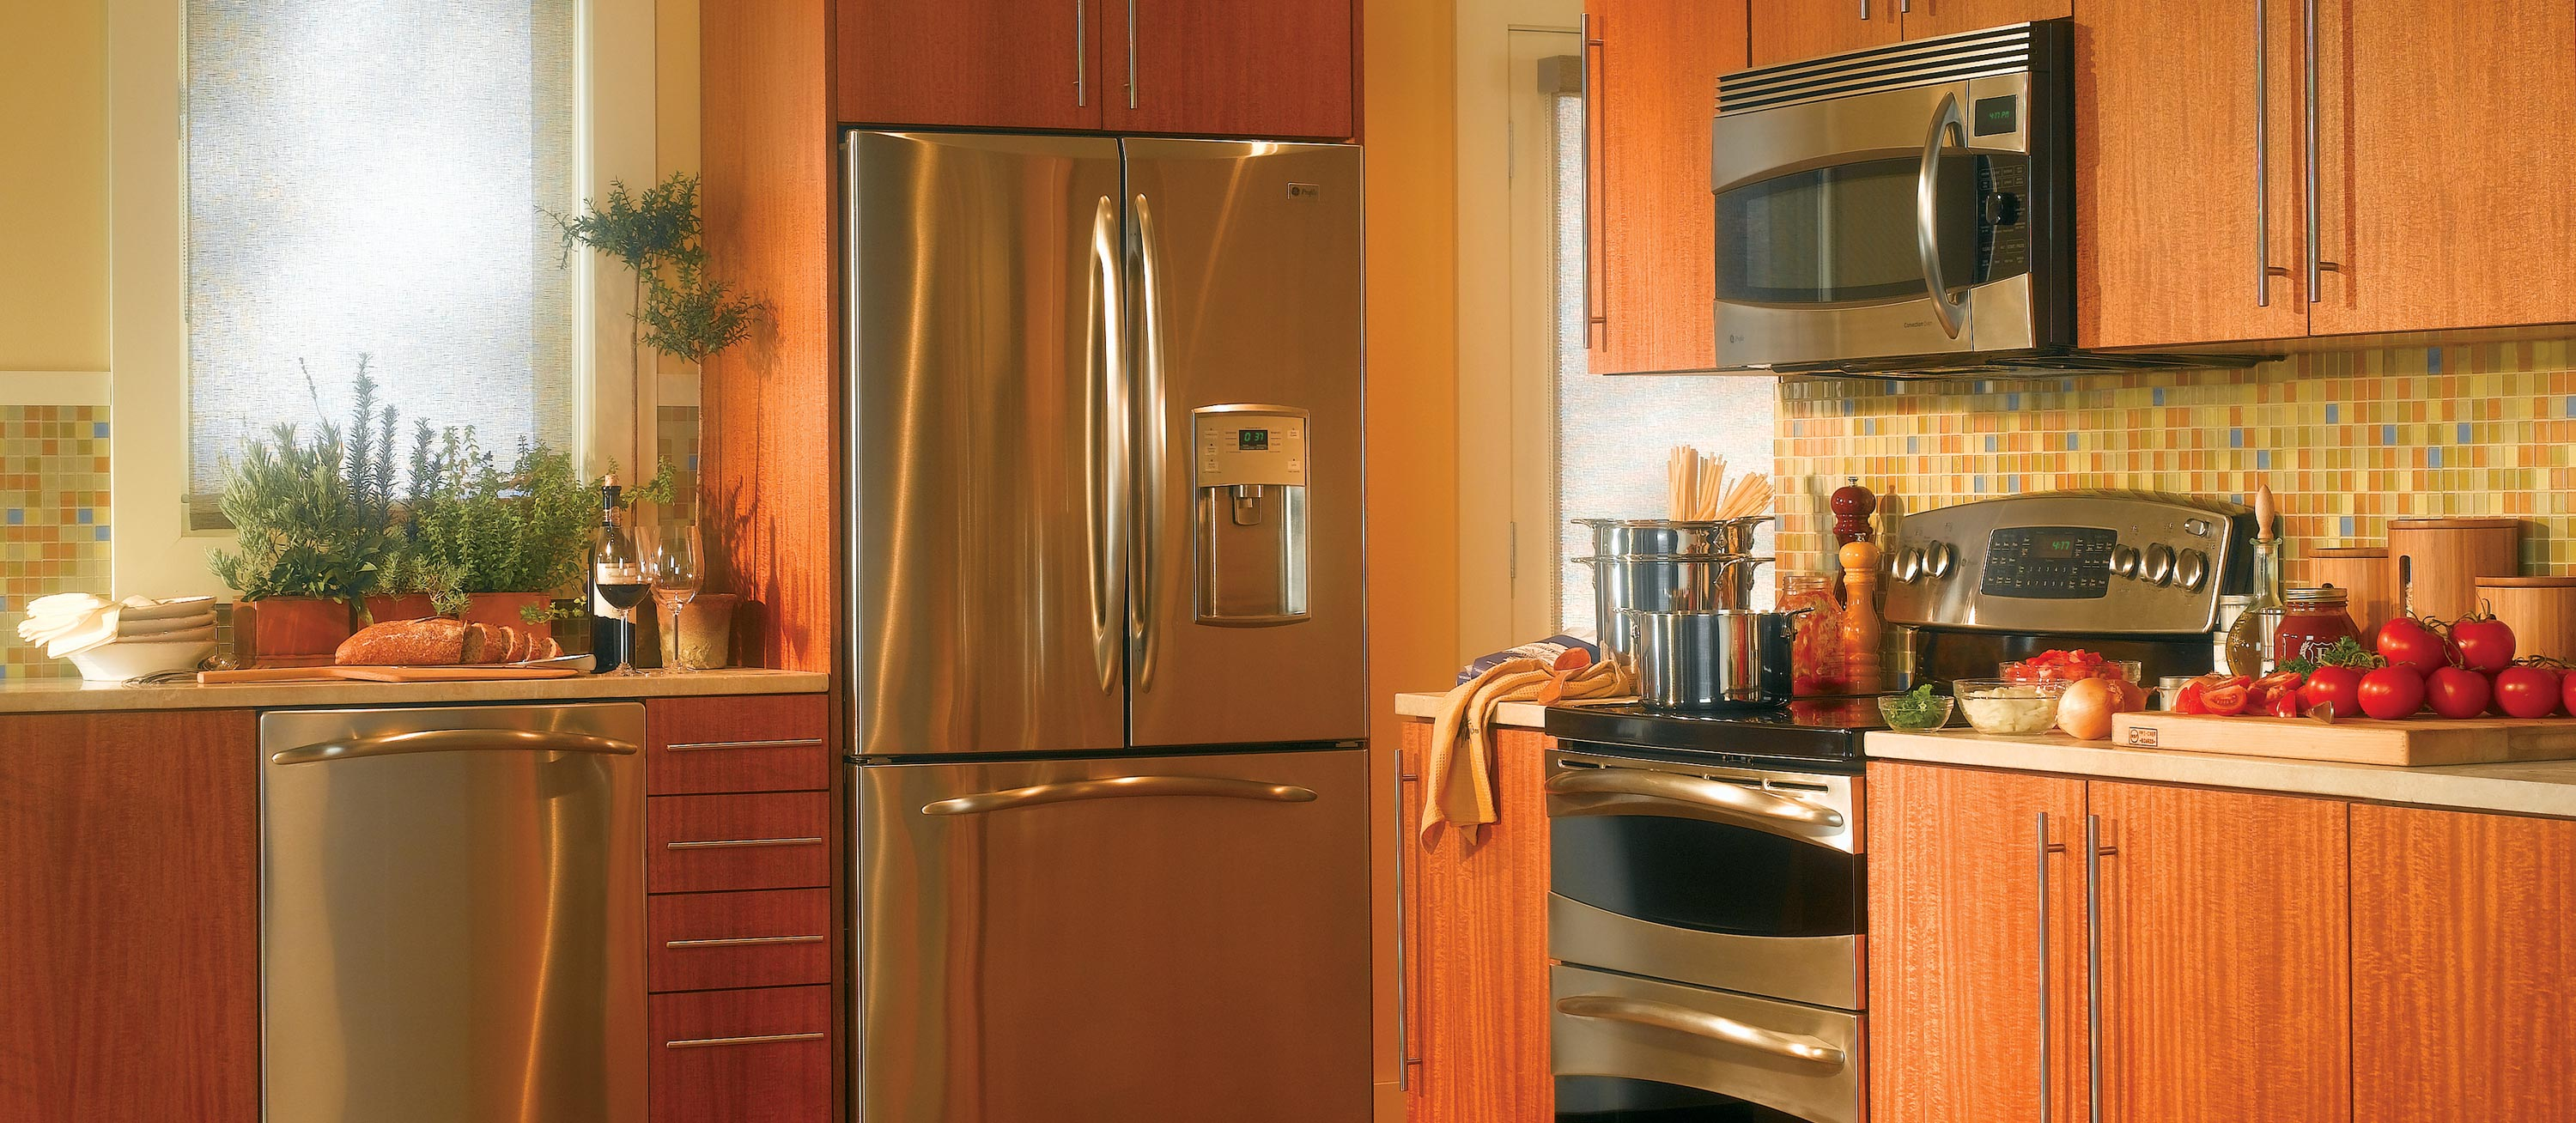 Refrigerator for small kitchen photo - 3